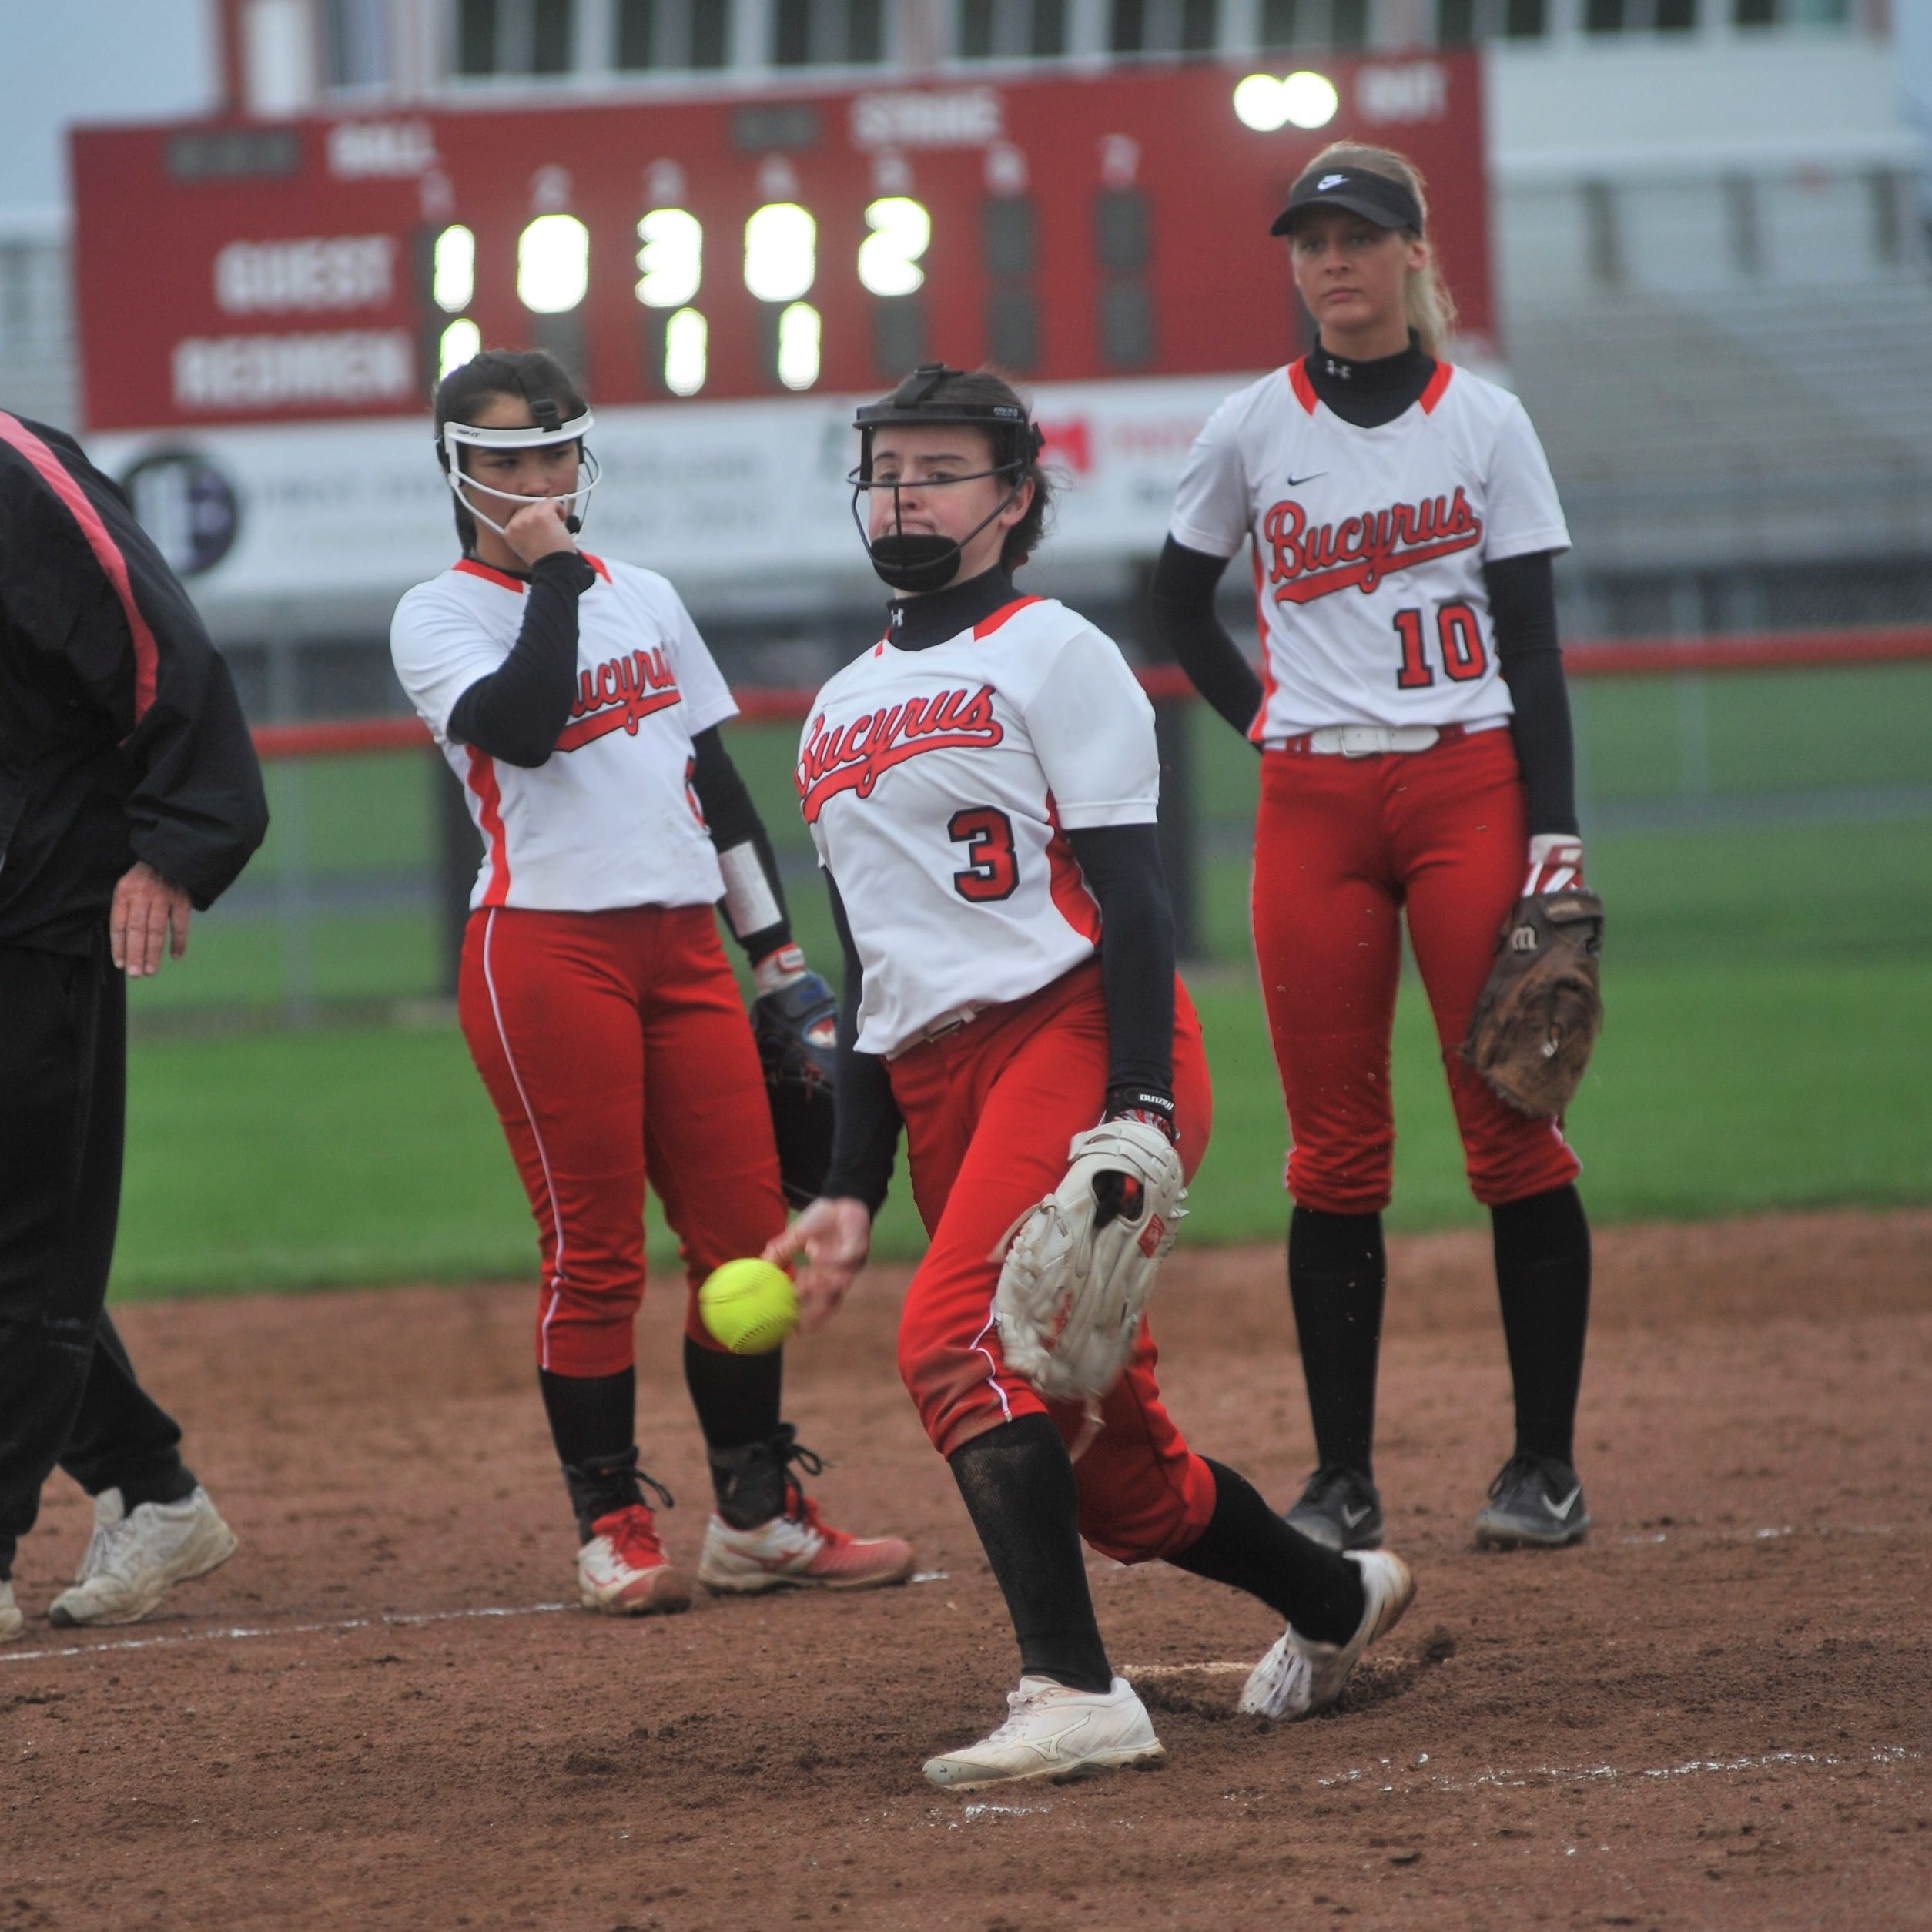 'We have to be ready at all times:' Bucyrus avoids upset against Buckeye Central